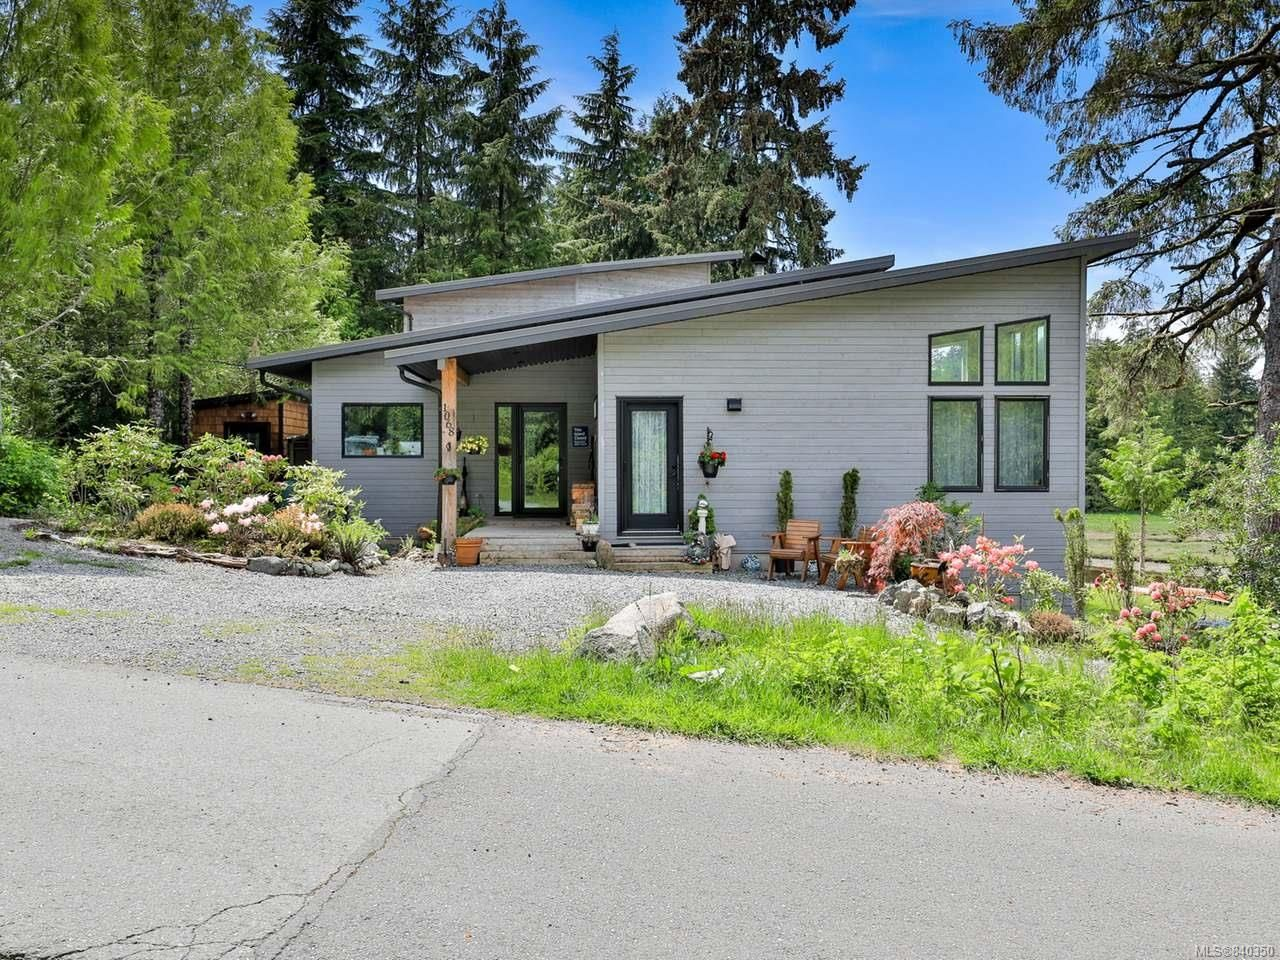 Photo 54: Photos: 1068 Helen Rd in UCLUELET: PA Ucluelet House for sale (Port Alberni)  : MLS®# 840350